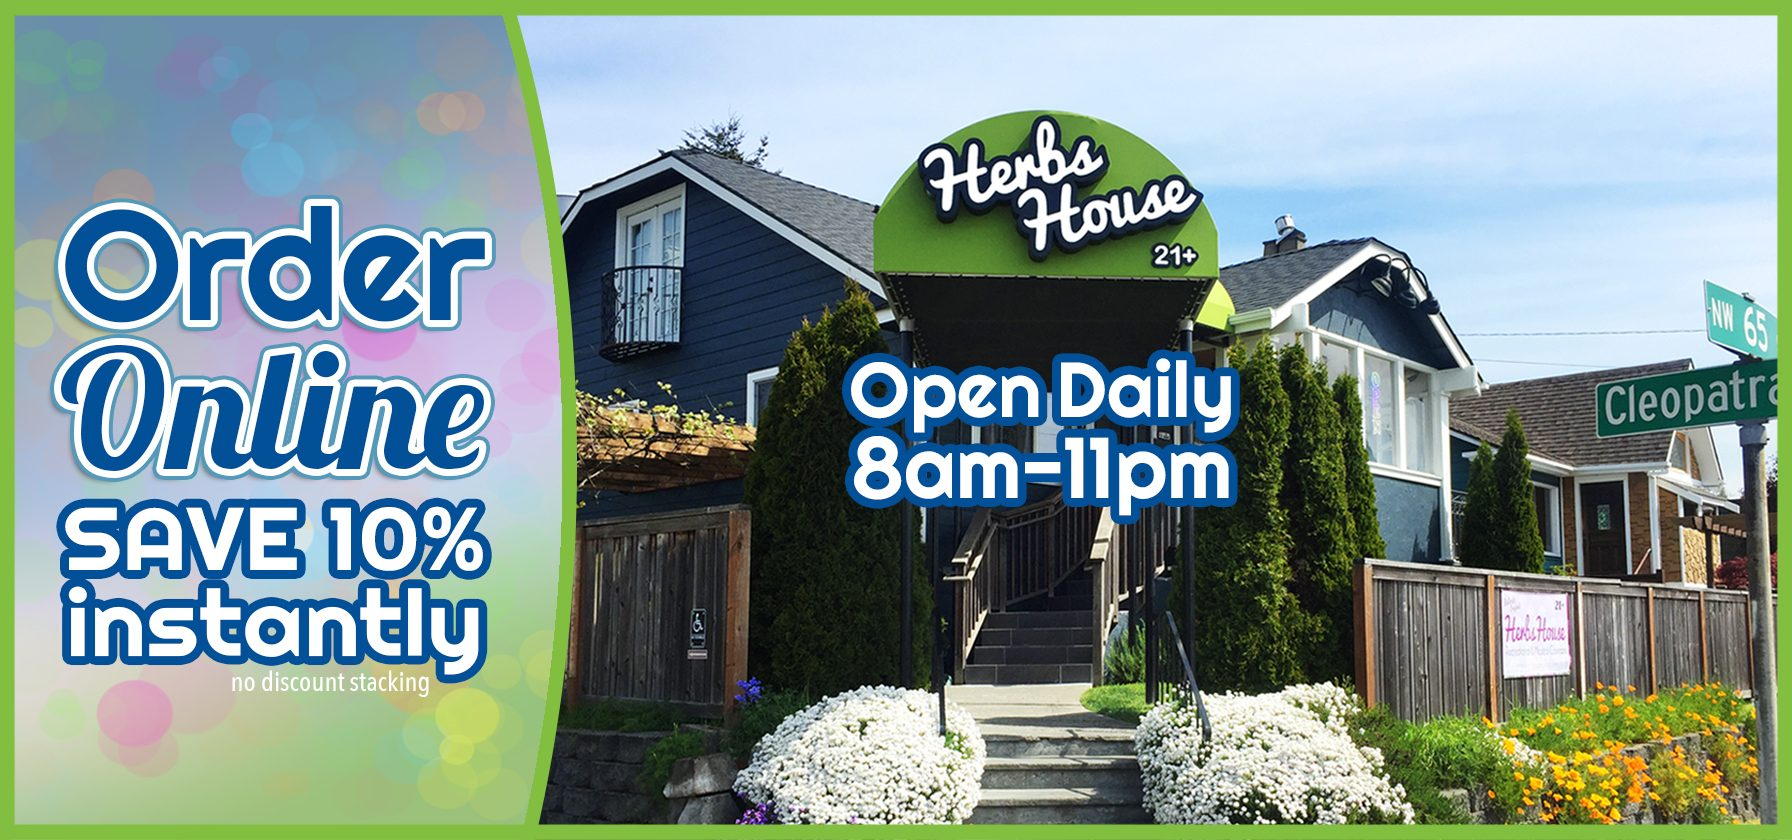 Welcome to Herbs House Open 8am - 11pm